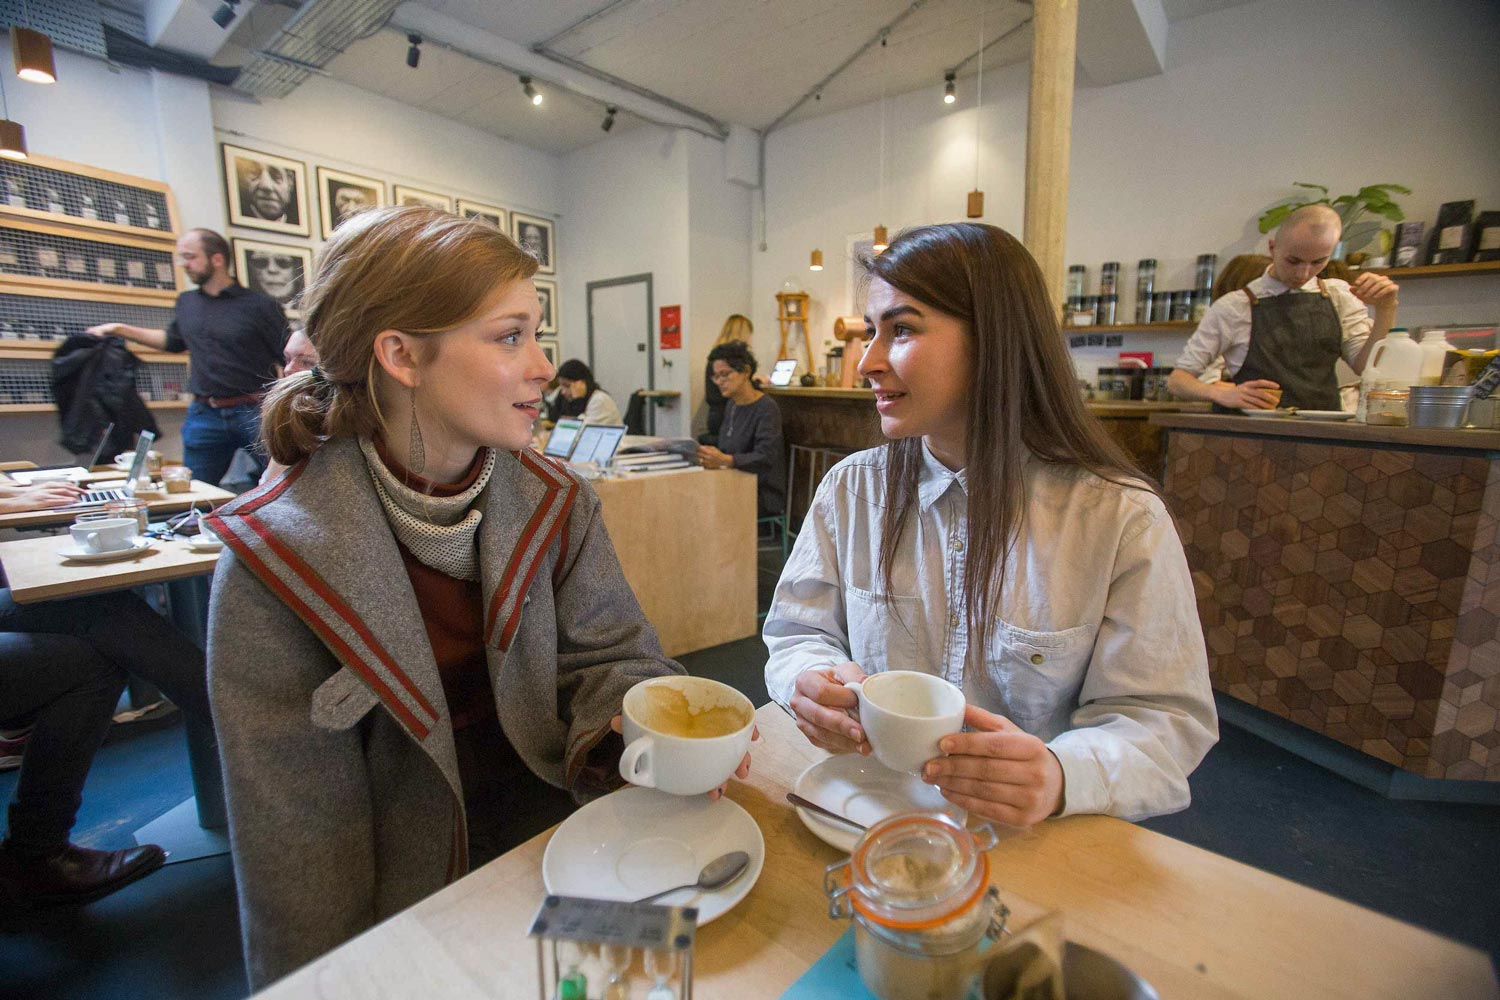 Cox, right, with her friend and fellow art historian, University of North Carolina graduate Meredith Miller, at Society Café, one of their favorite coffee shops in Oxford.